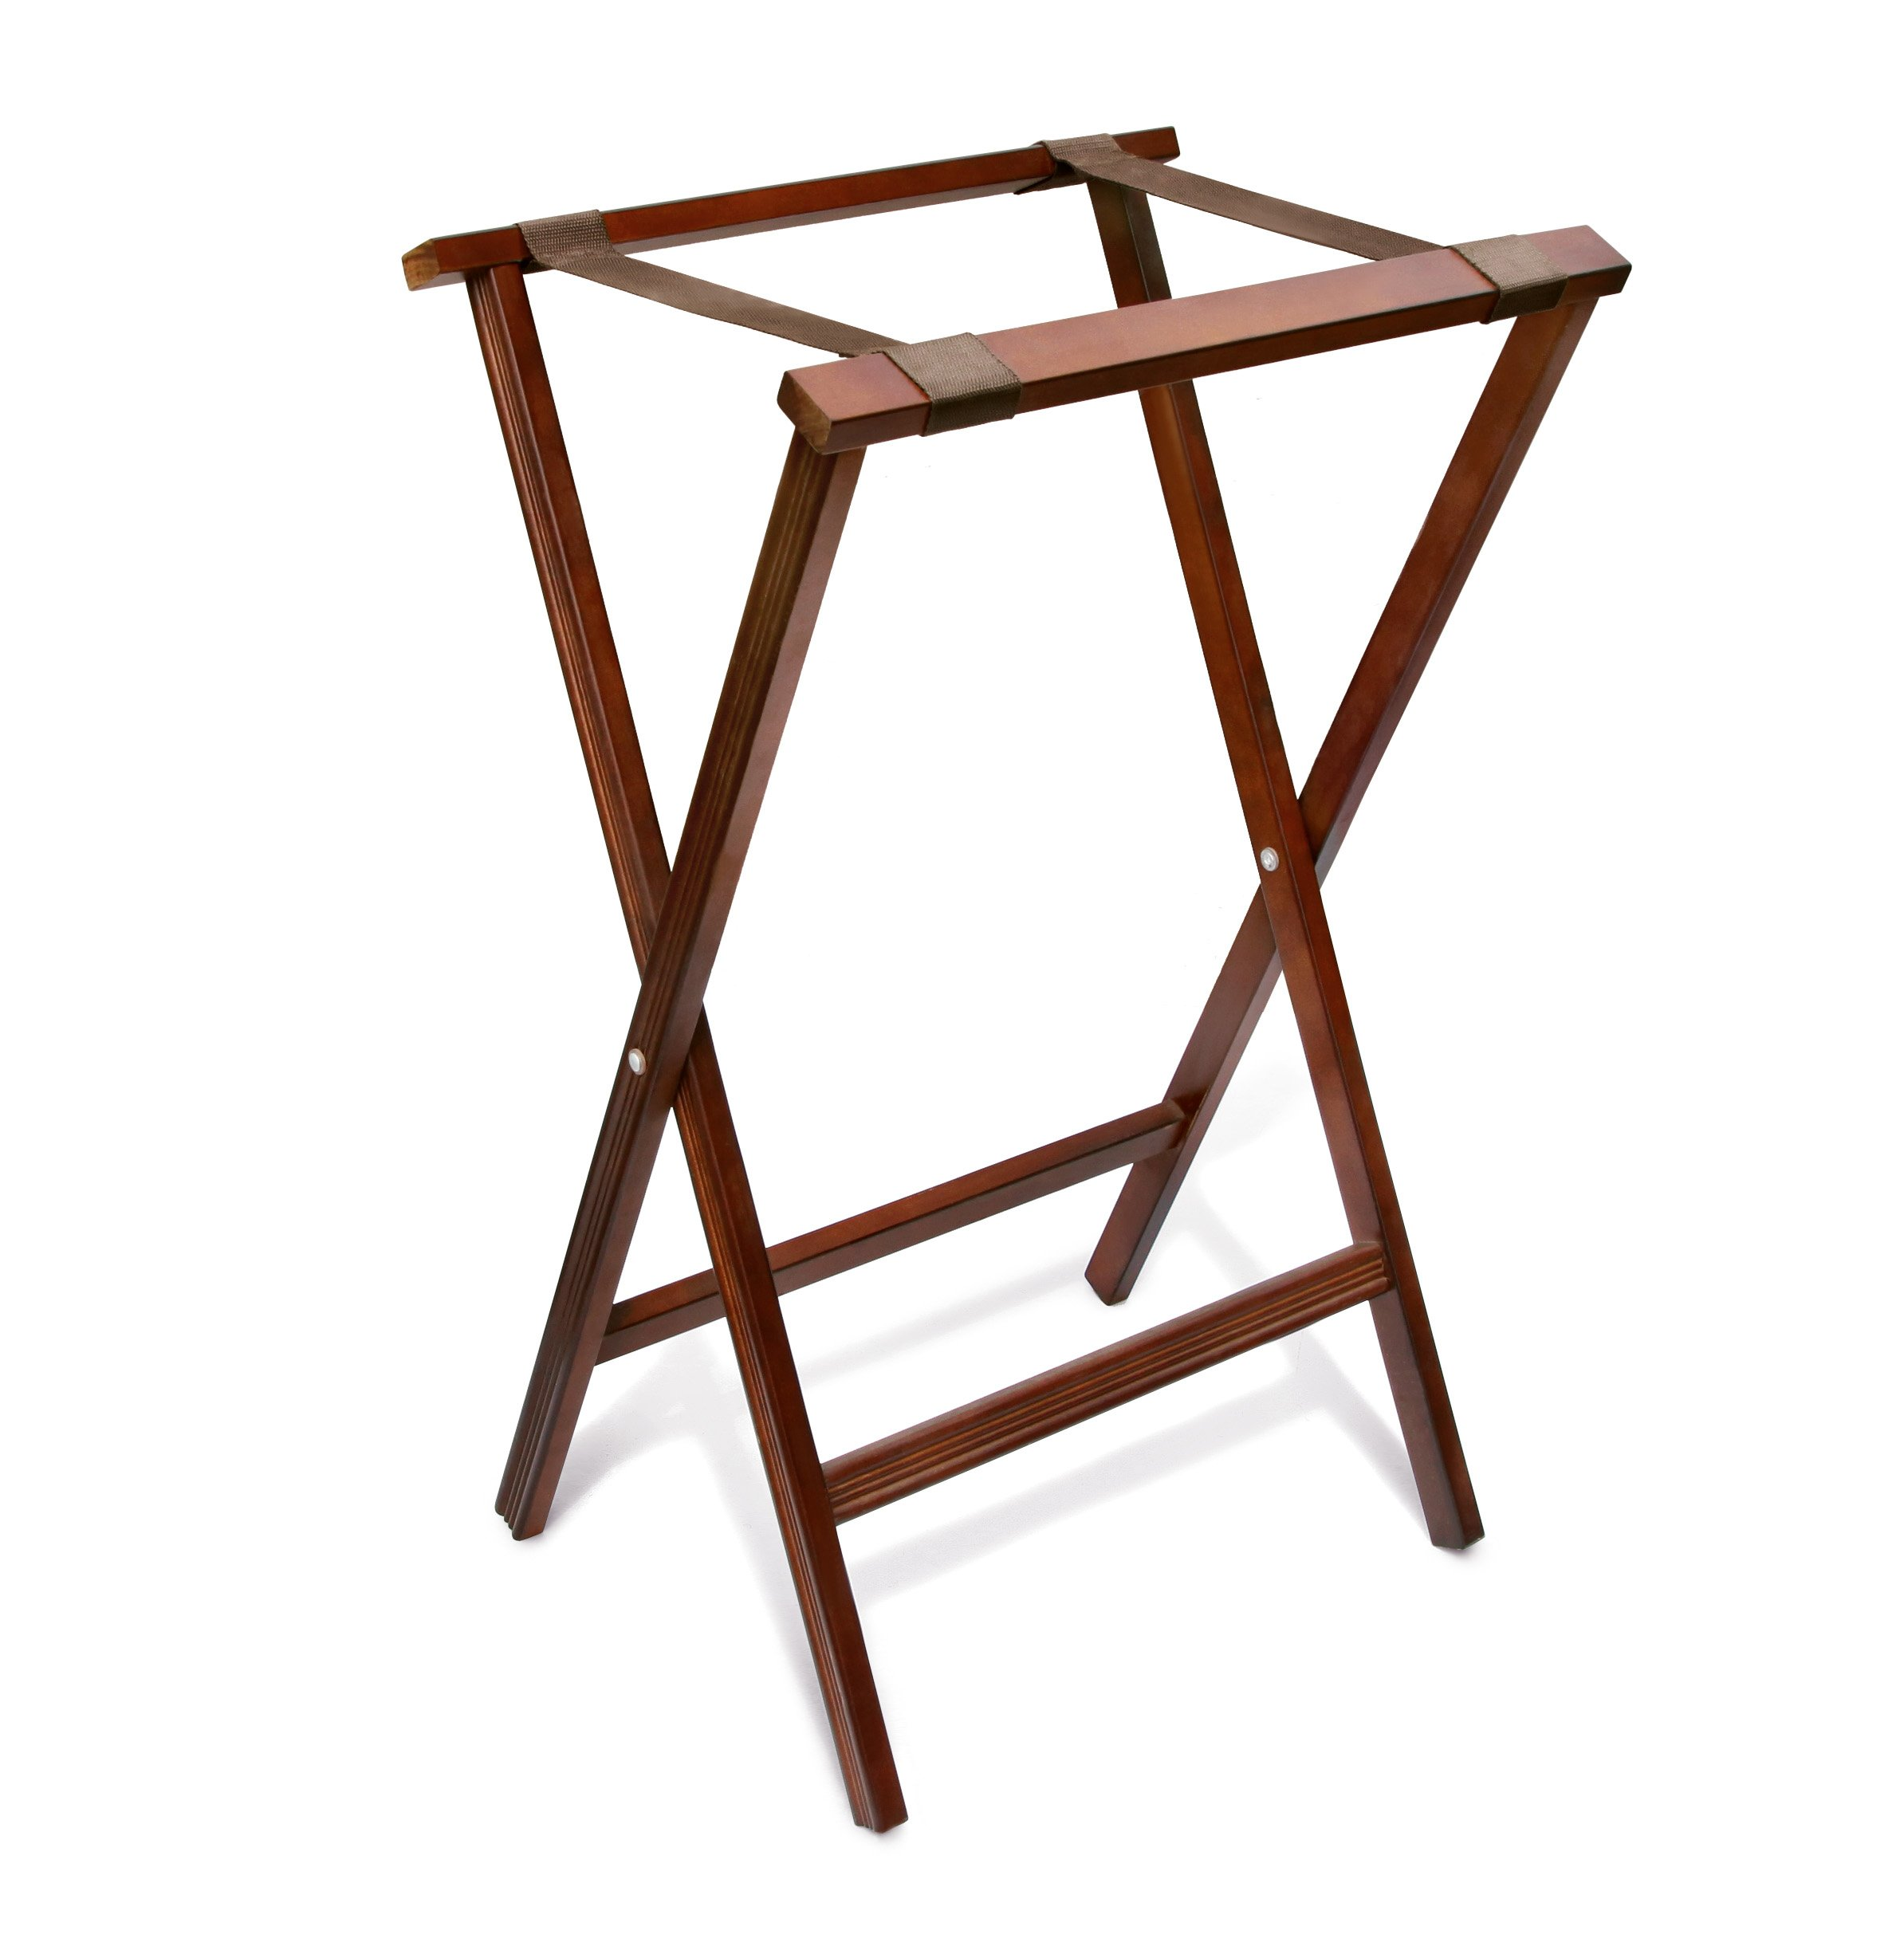 New Star Foodservice 20069 Walnut Finish Solid Wood Tray Stand, 32-Inch